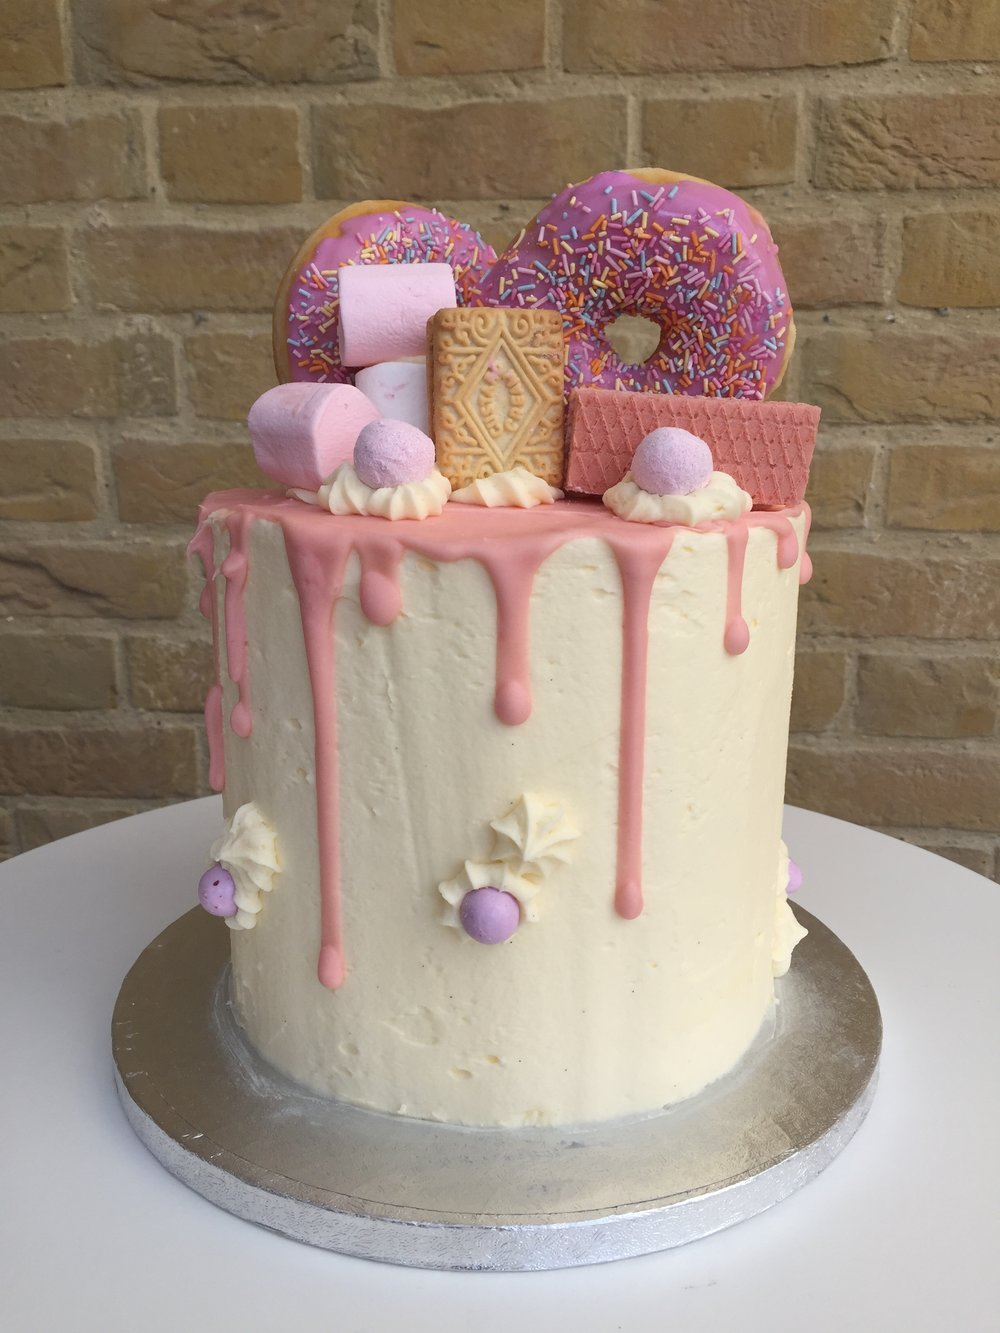 A fun birthday drip cake decorated with donuts, chocolate shards and Oreos. Drip cakes made to order in Kings Lynn and Norfolk